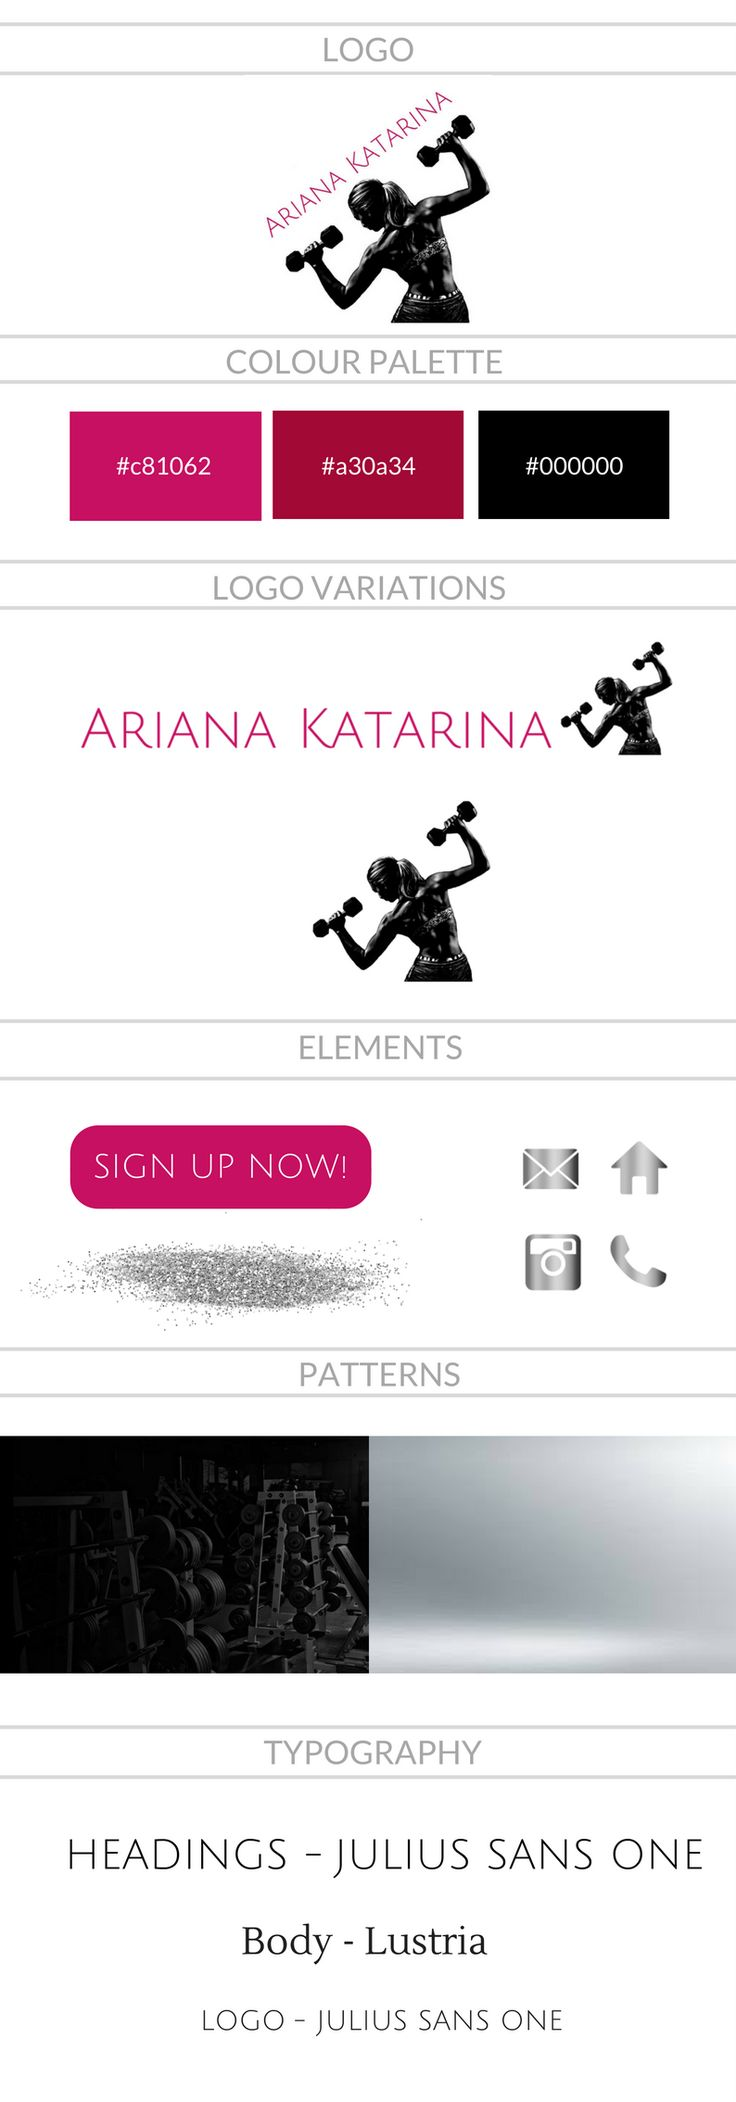 Brand Style Guide created by North Palm Digital for personal trainer Ariana Katarina